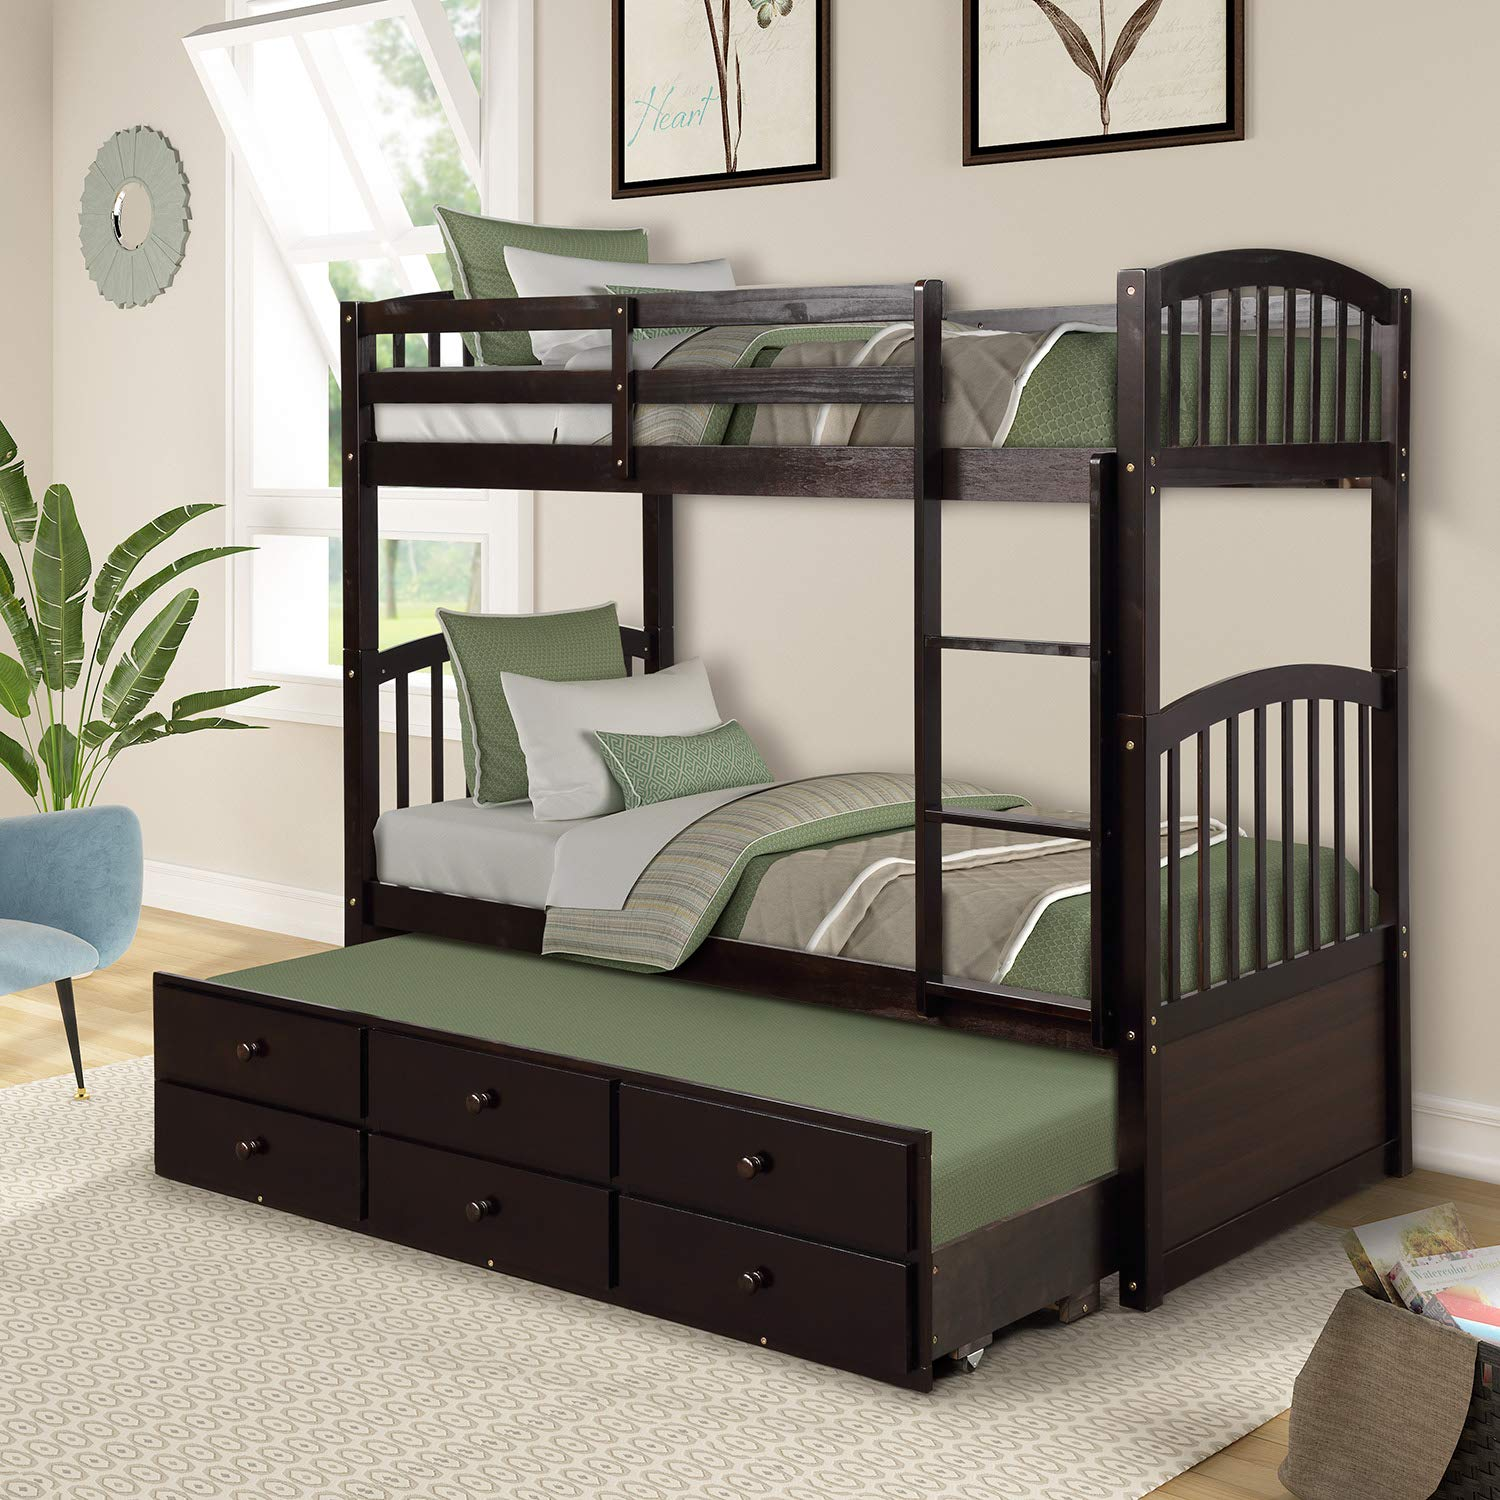 Twin Bunk Beds, Rockjame Twin Over Twin Solid Wood Bunk Bed Space Saving Design Sleeping Bedroom Furniture with Twin Trundle Bed, Ladder, Safety Rail and 3 Drawers for Boys, Girls and Kids Espresso